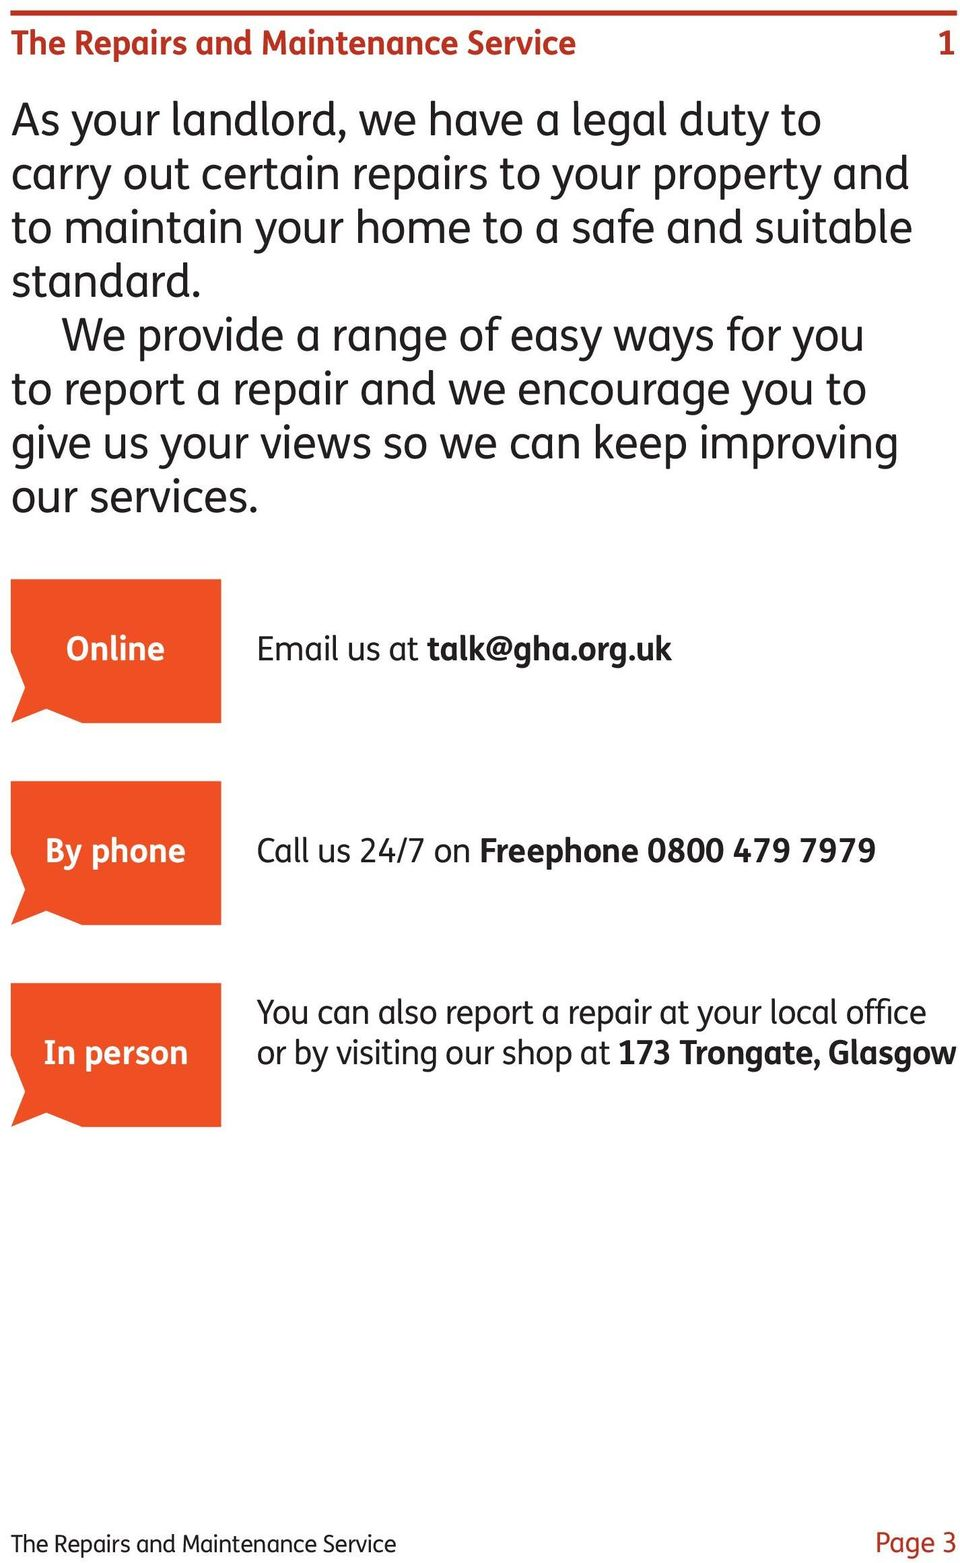 We provide a range of easy ways for you to report a repair and we encourage you to give us your views so we can keep improving our services.